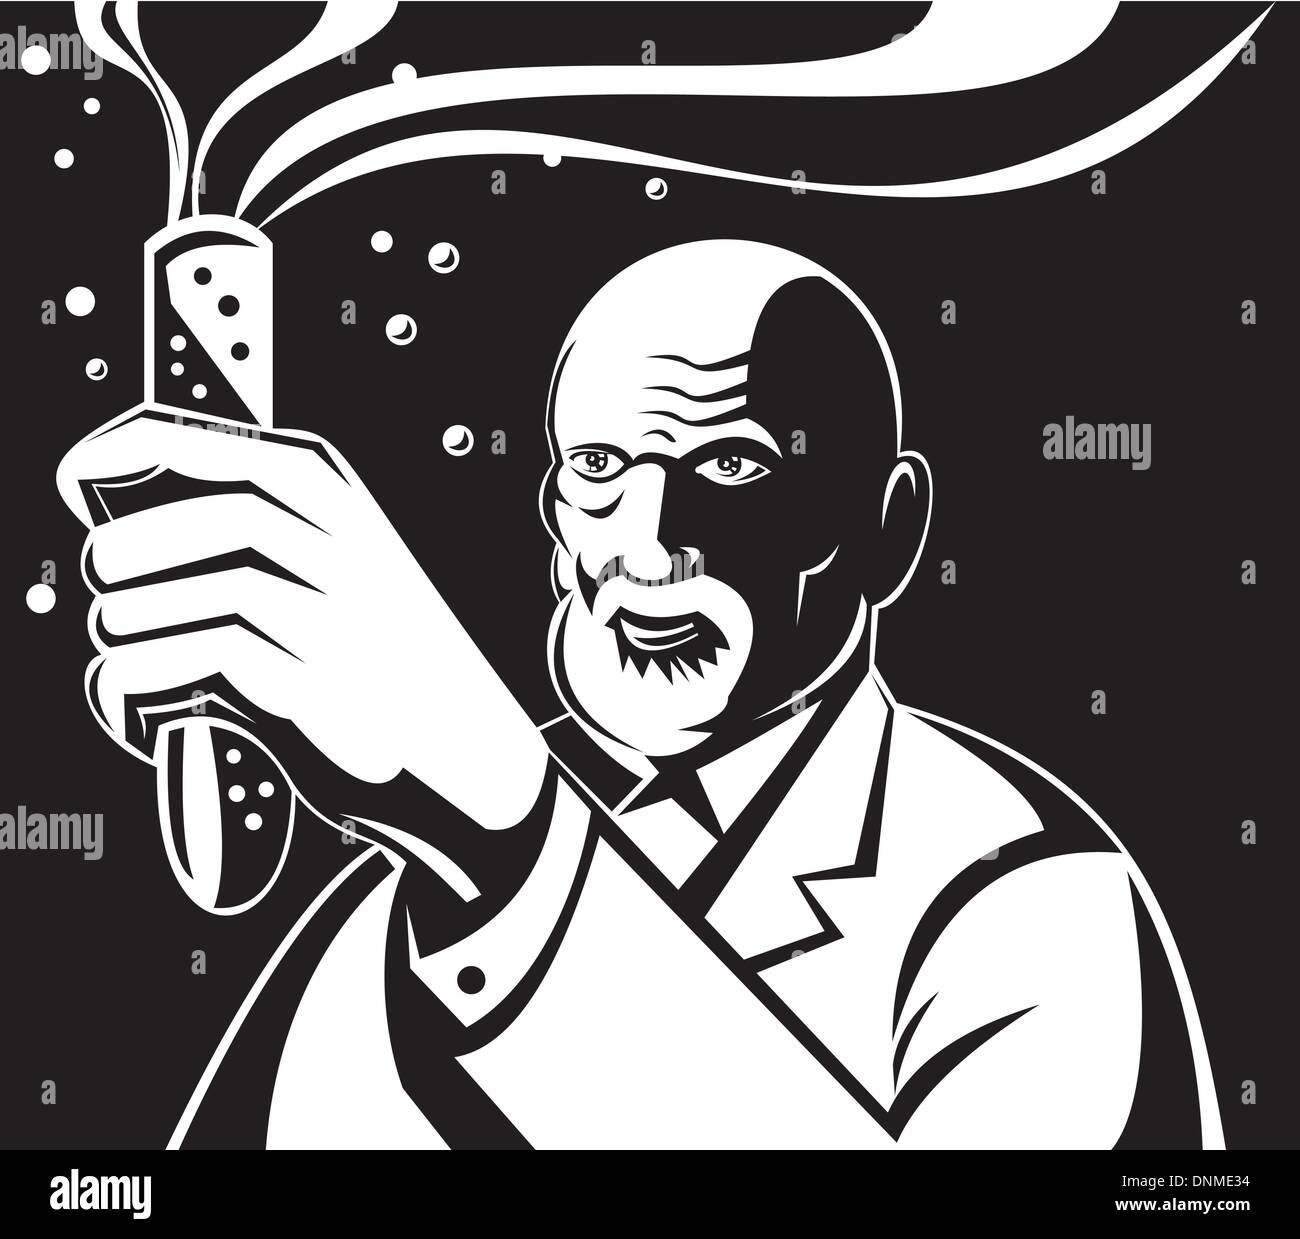 Illustration of a mad scientist holding up a test tube done in retro style. - Stock Vector